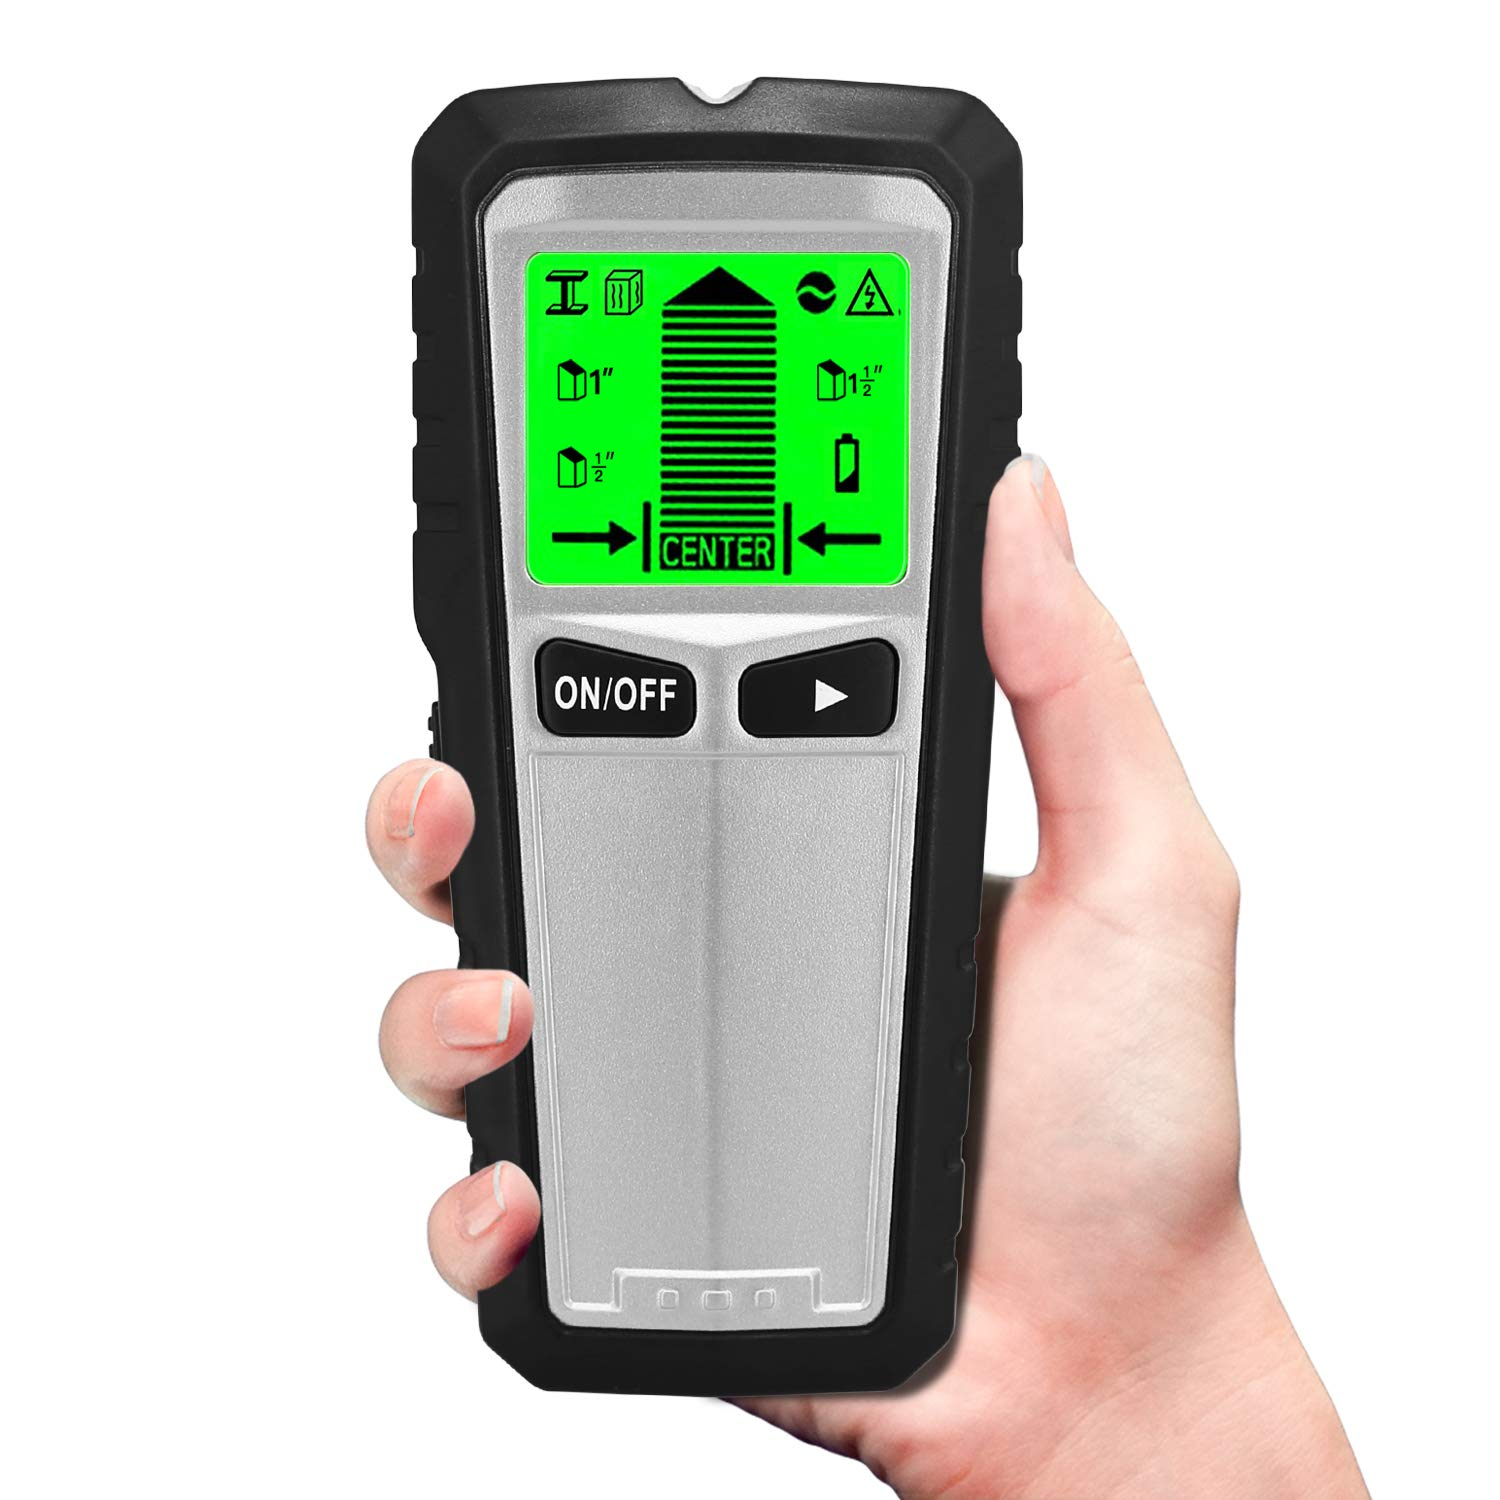 Stud Finder, 5 in 1 Multifunctional Wall Scanner Detector with Digital LCD Display & Sound Warning for Studs/Wood/Metal/Live AC Wires by drtulz